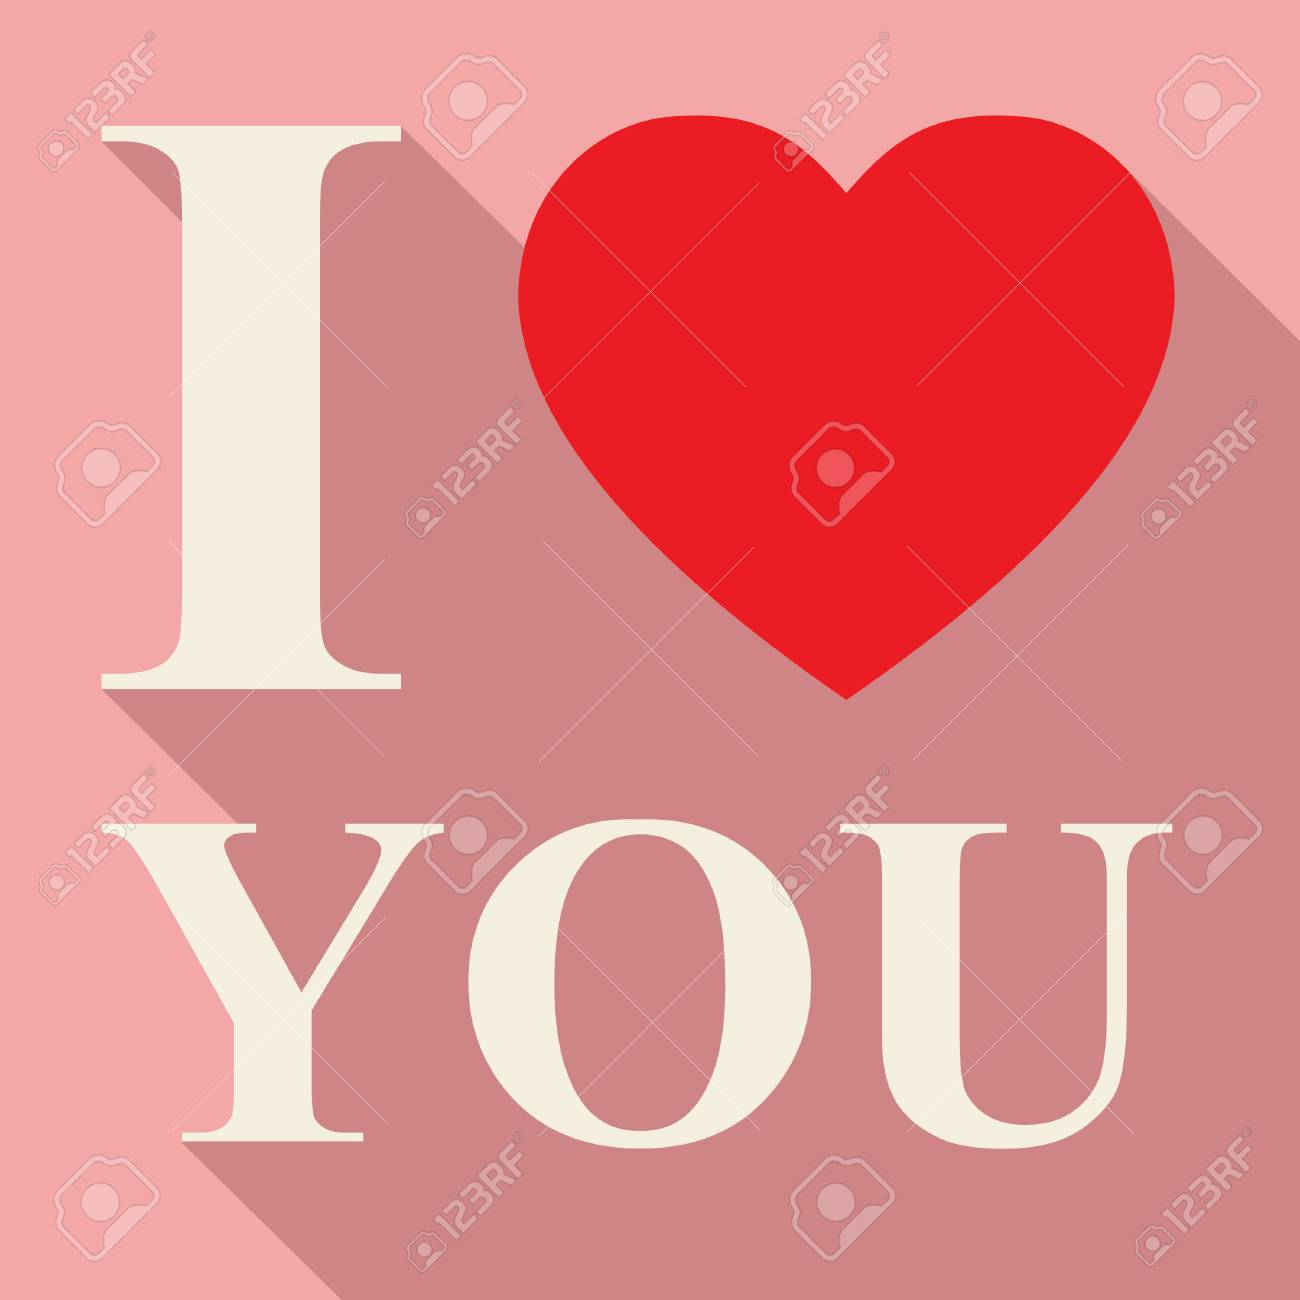 Love You Phrase Meaning Heart Shapes And Lover Stock Photo Picture